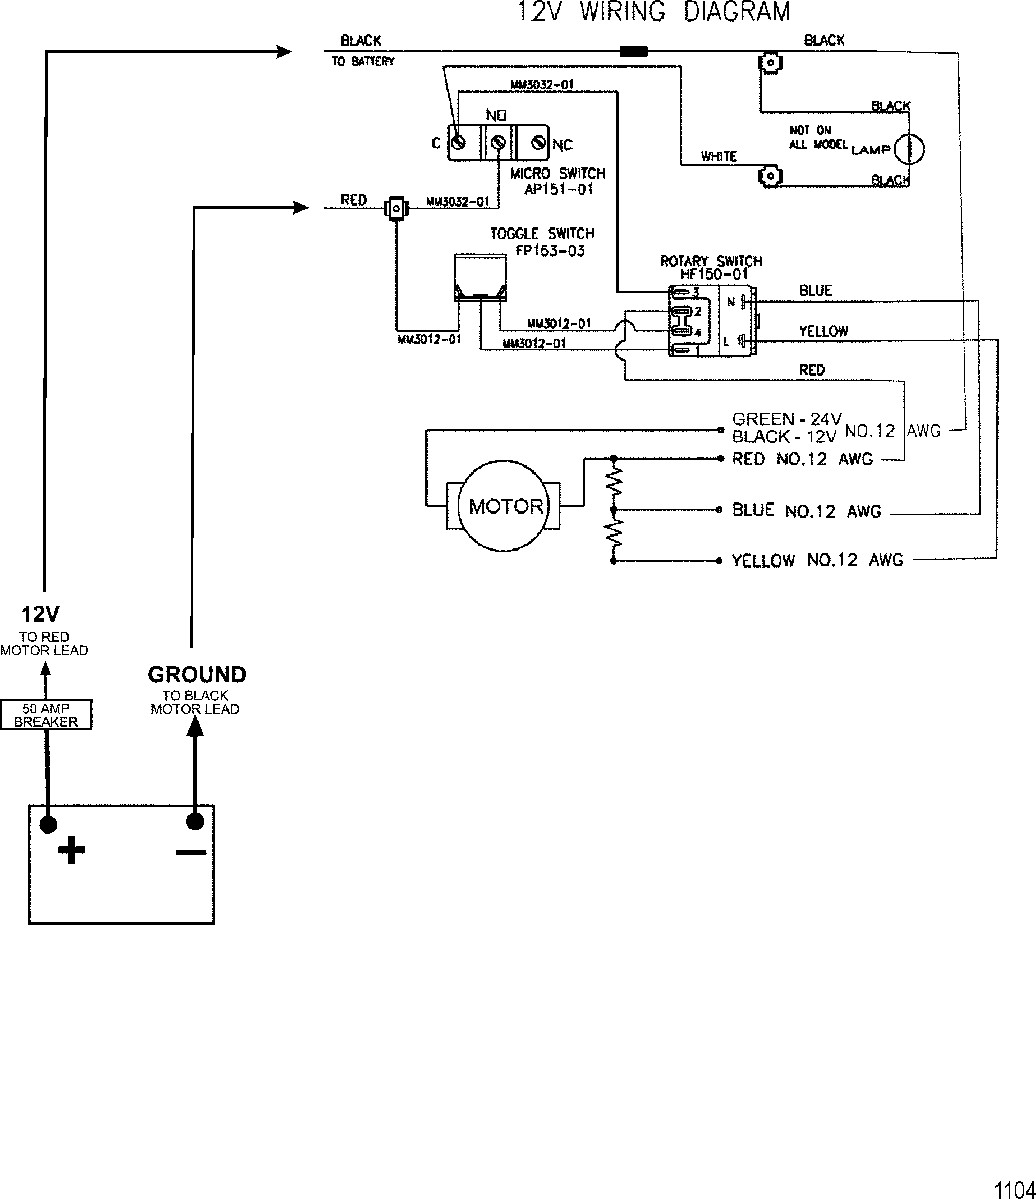 motorguide wiring diagram 1994 12 24 trolling motor wiring diagram rh saveto co seachoice wiring diagram Light Switch Wiring Diagram